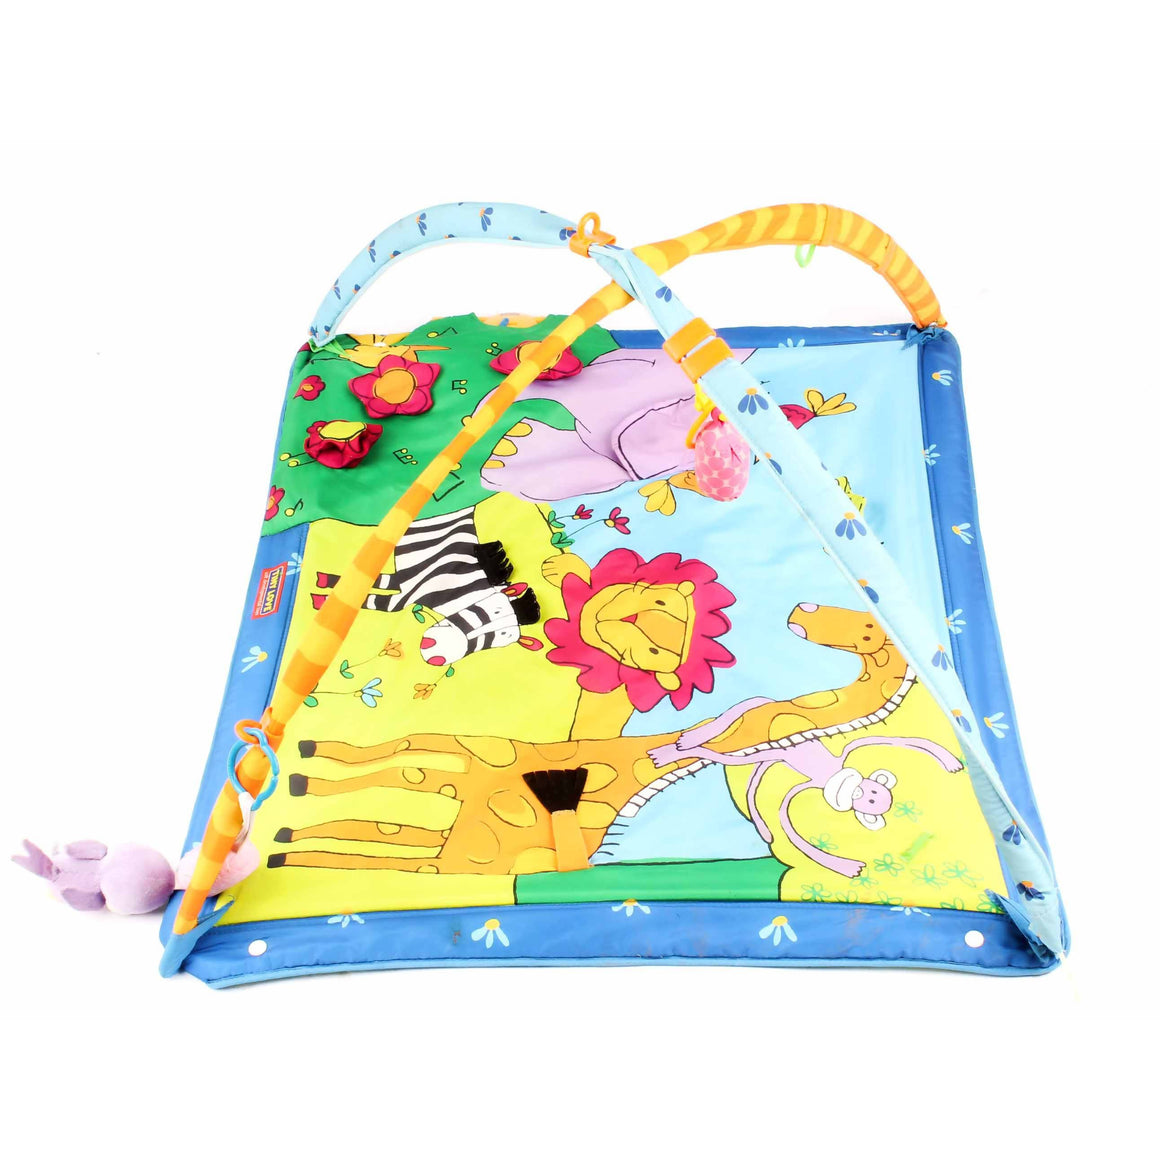 Tiny Love Play Mat - Cuddlecircle